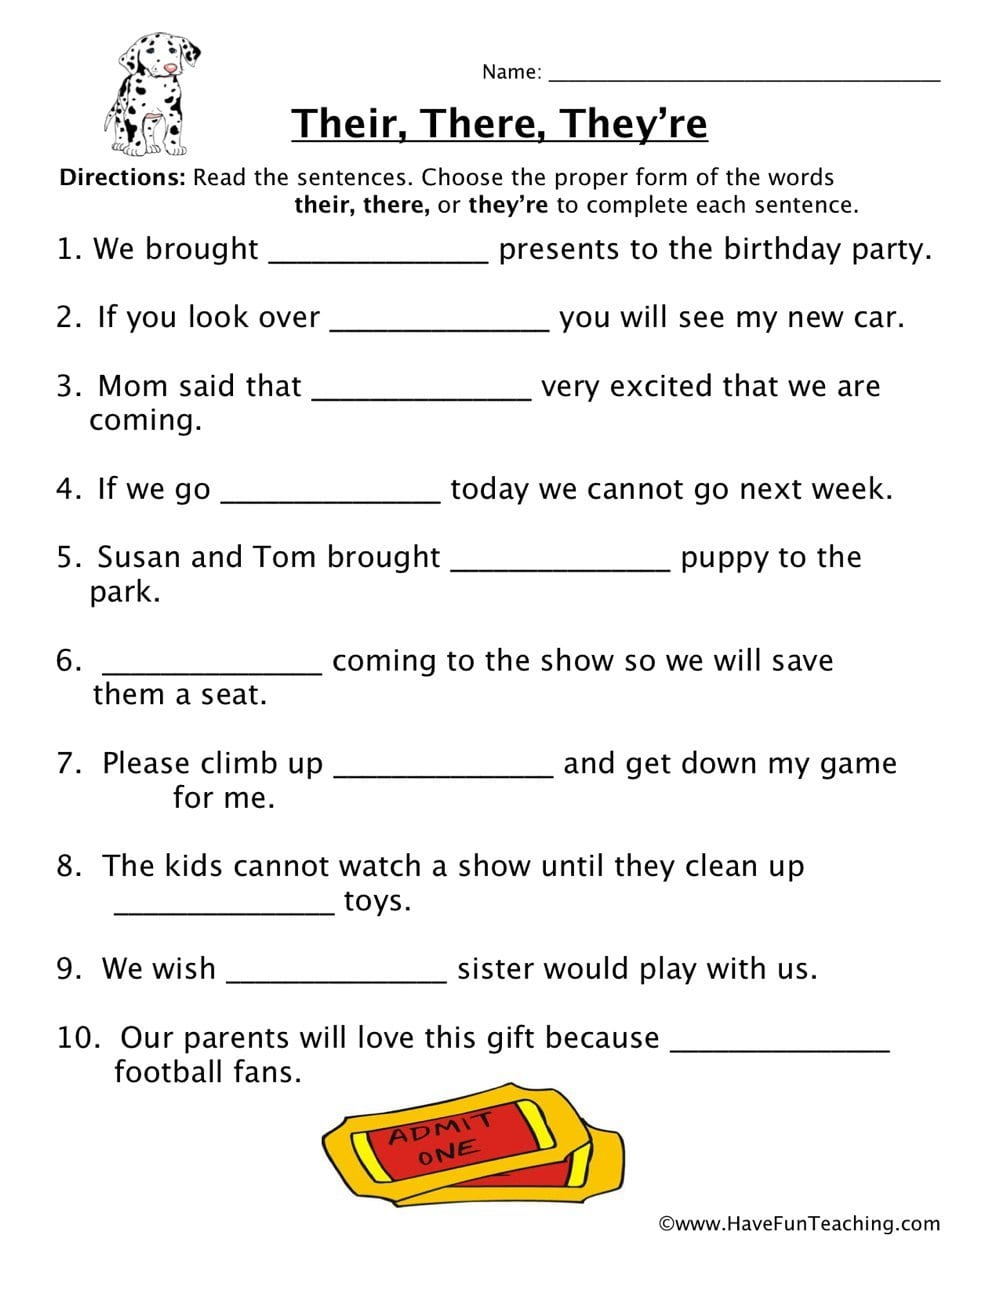 Their There They're Homophones Worksheet  Have Fun Teaching Together With There Their And They Re Worksheet